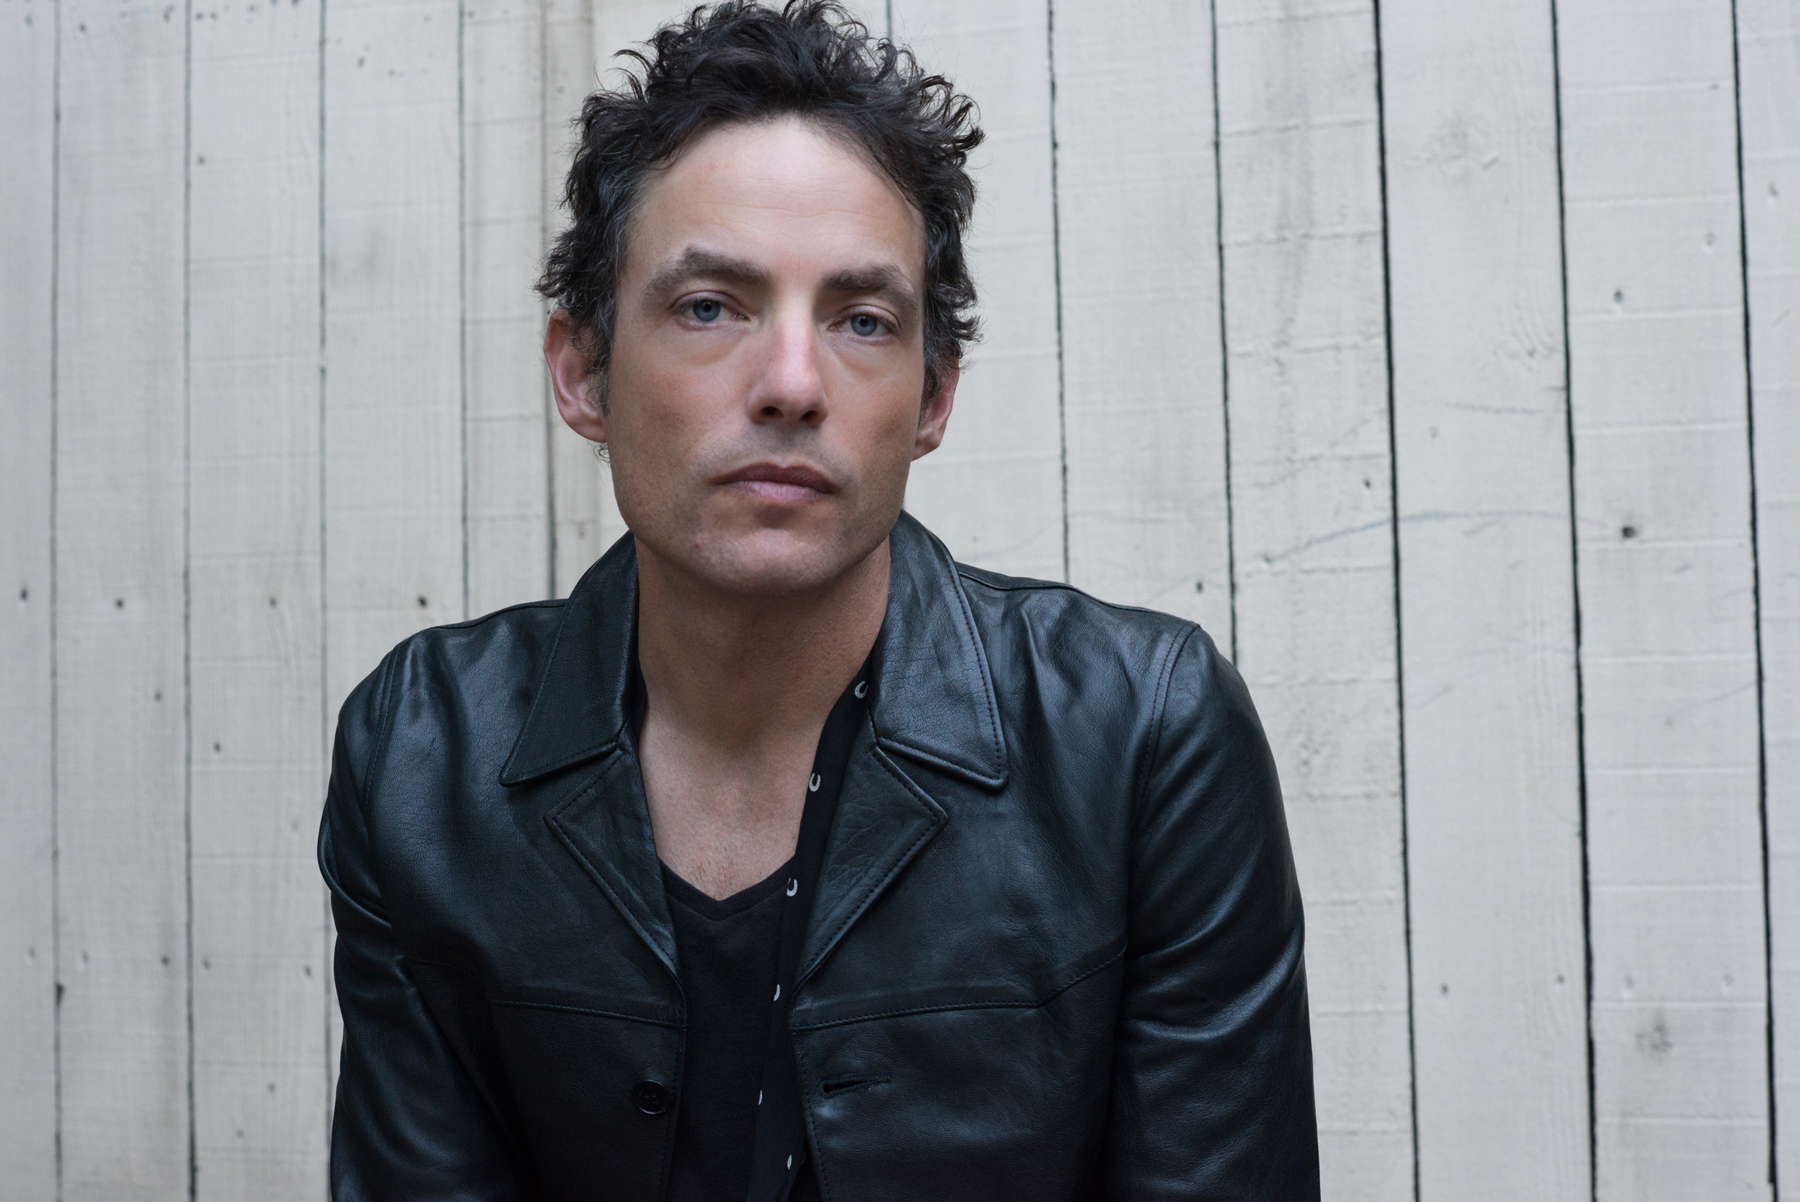 The Wallflowers Announce First Album in 9 Years, 'Exit Wounds'